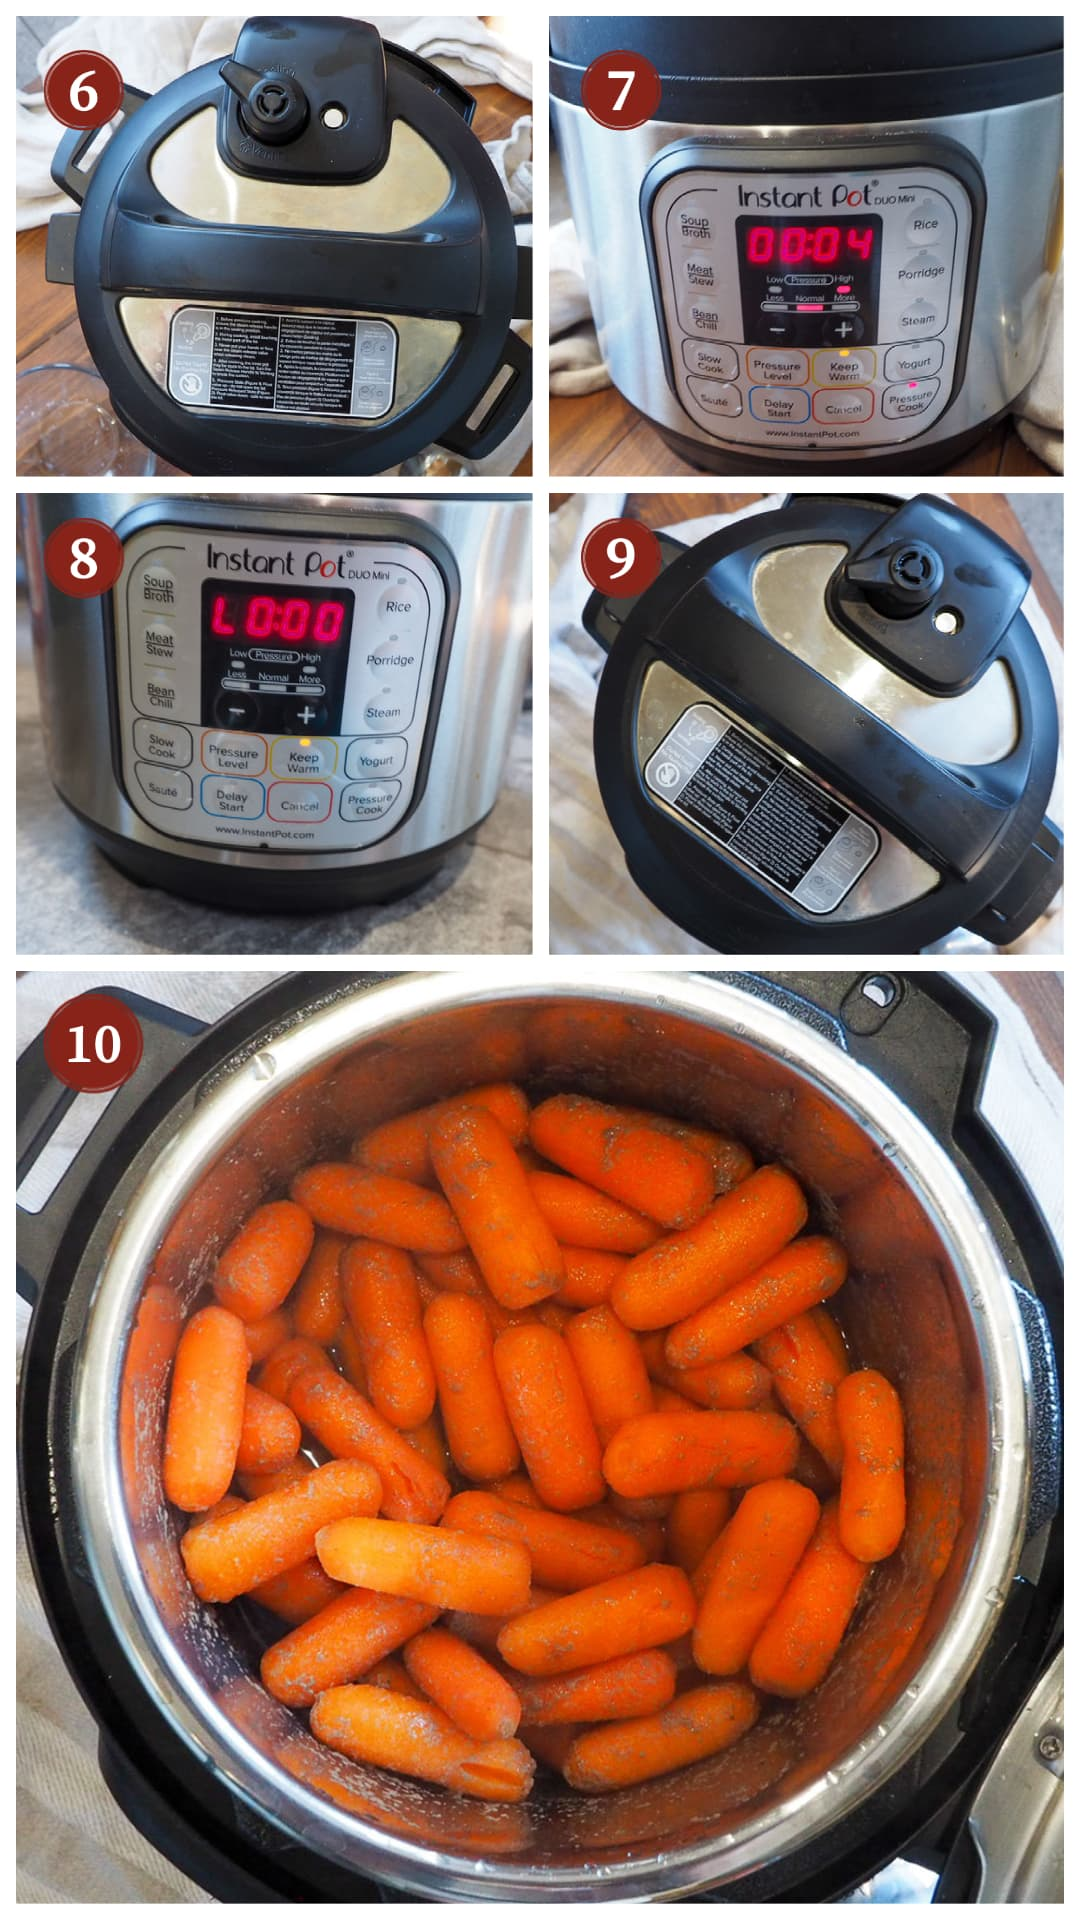 A collage of images showing how to make glazed carrots in an instant pot, steps 6 - 10.